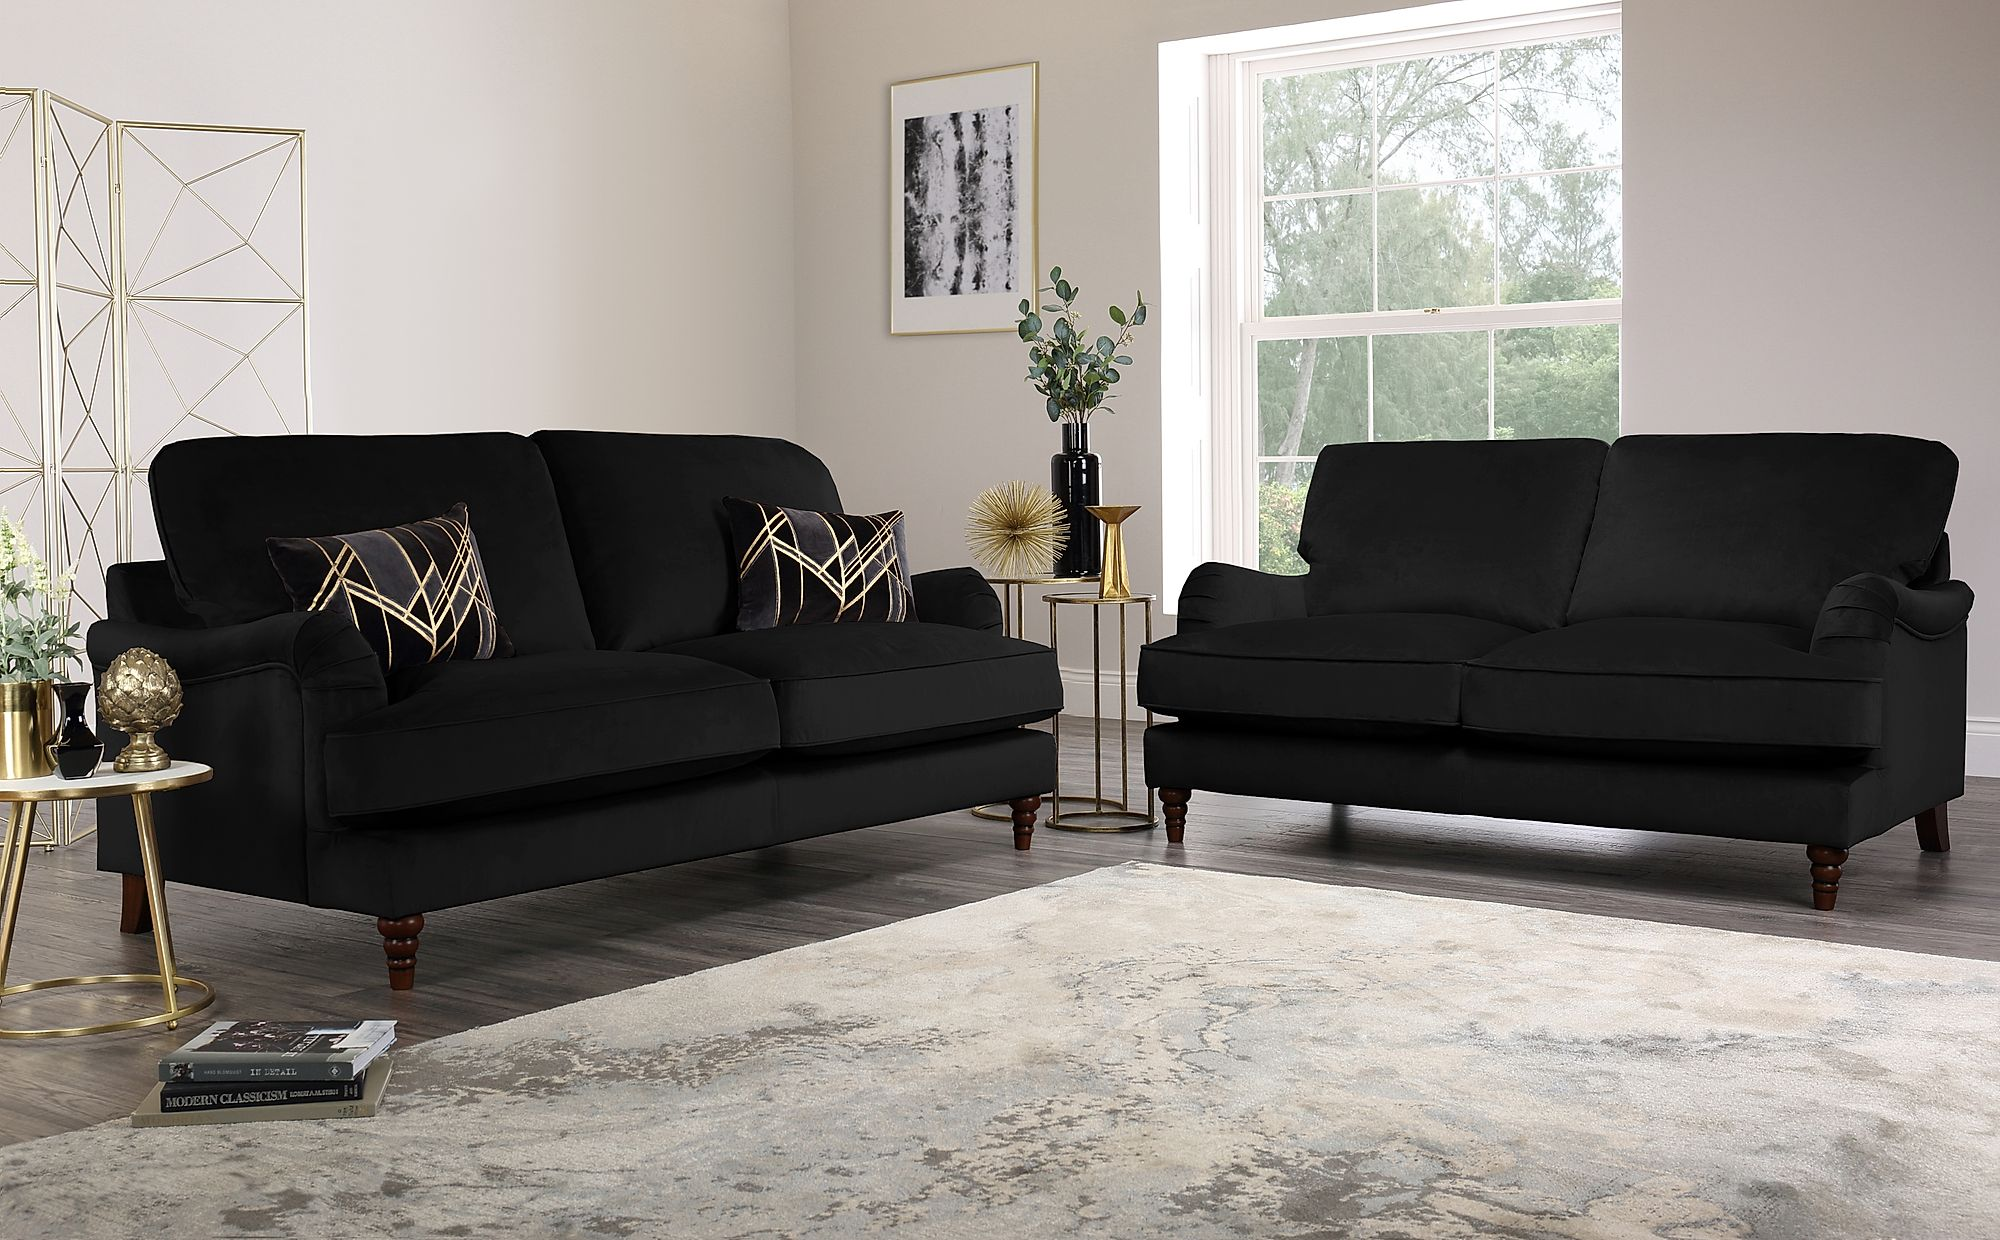 Charleston Black Velvet Sofa 3+2 Seater Only £1299.98